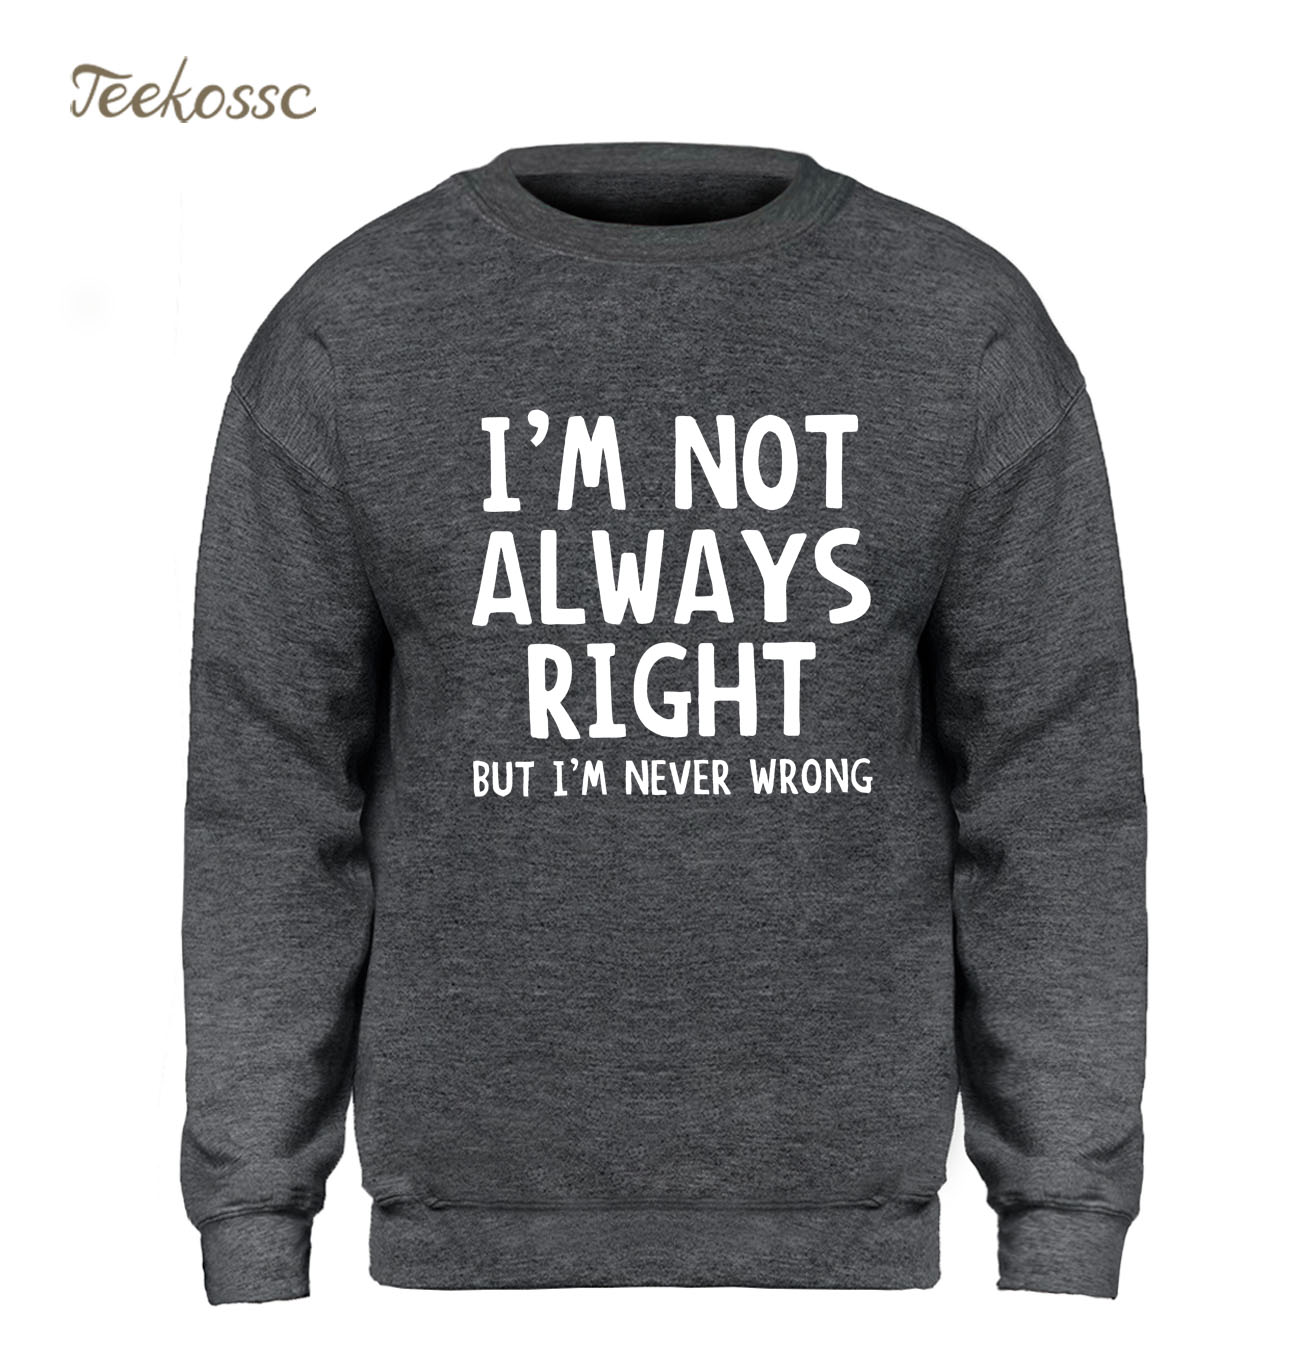 I'm Not Always Right But I'm Never Wrong Hoodie Men Letters Printed Sweatshirt Black Winter Autumn Fleece Warm Sportswear Mens